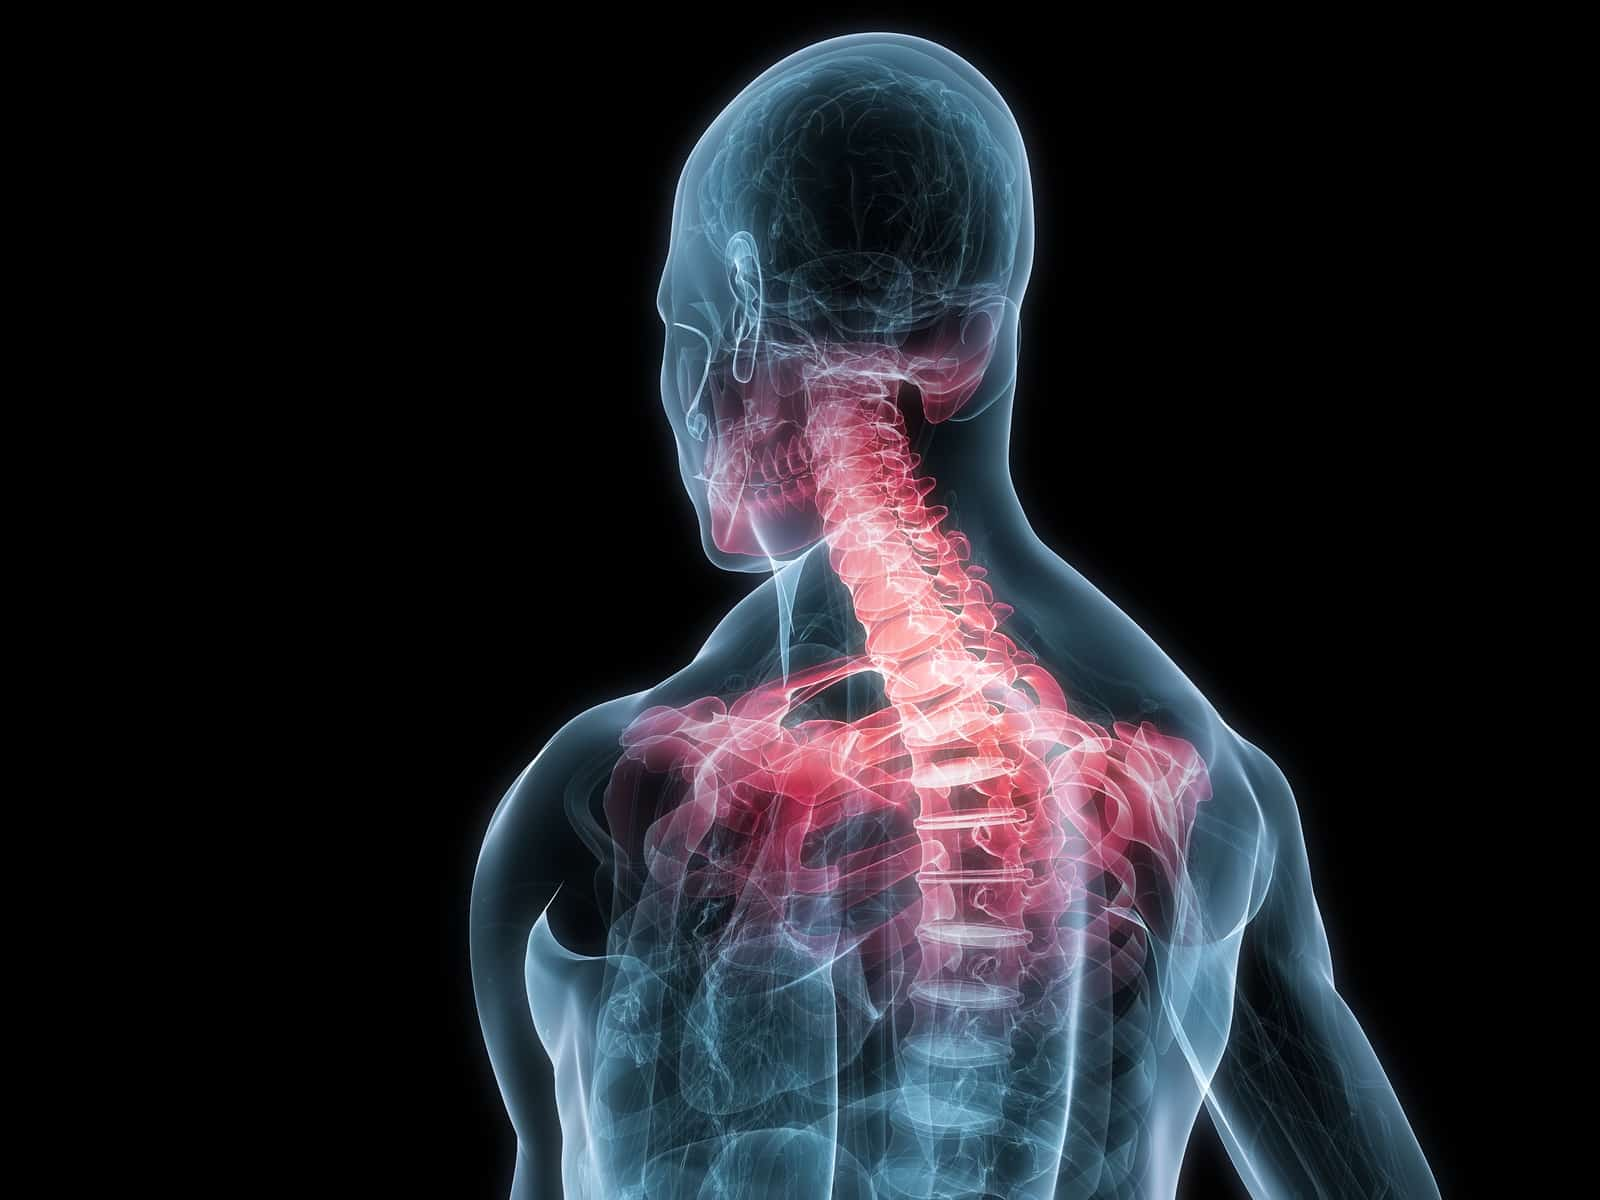 How to Recognize and Treat Neck Pain